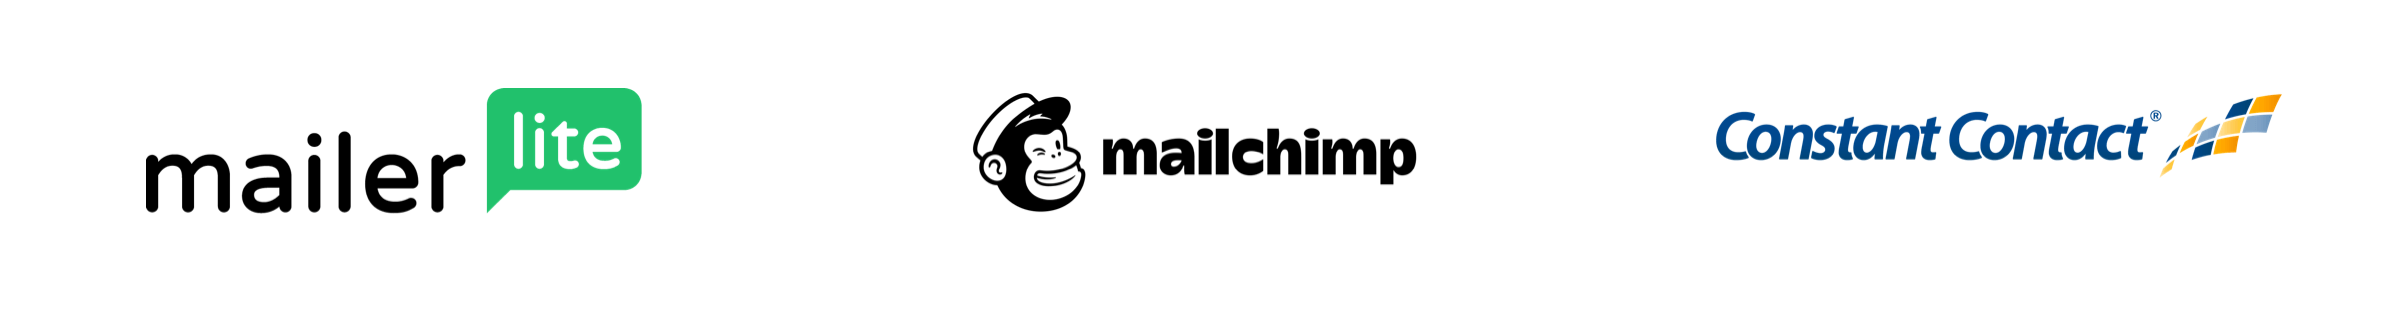 Three logos for email service providers, including MailerLite, MailChimp and Constant Contact